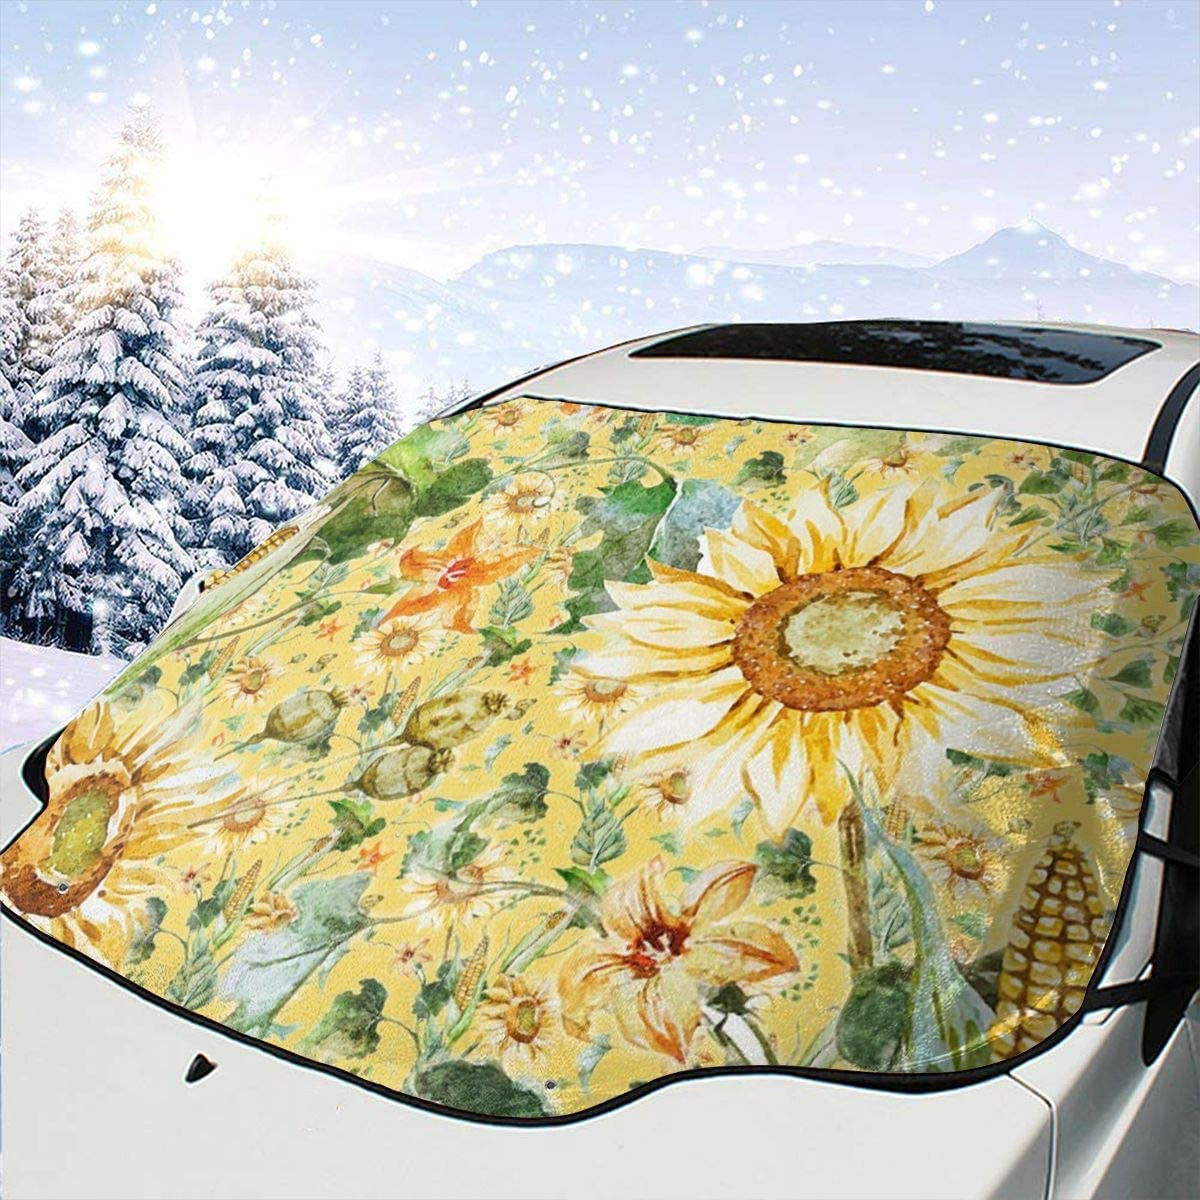 THONFIRE Car Front Window Windshields Winter Sunshade Watercolor Sunflower Beautiful Cover Snow Proof Blocks UV Rays Damage Free Visor Protector SUV Summer Heatshield